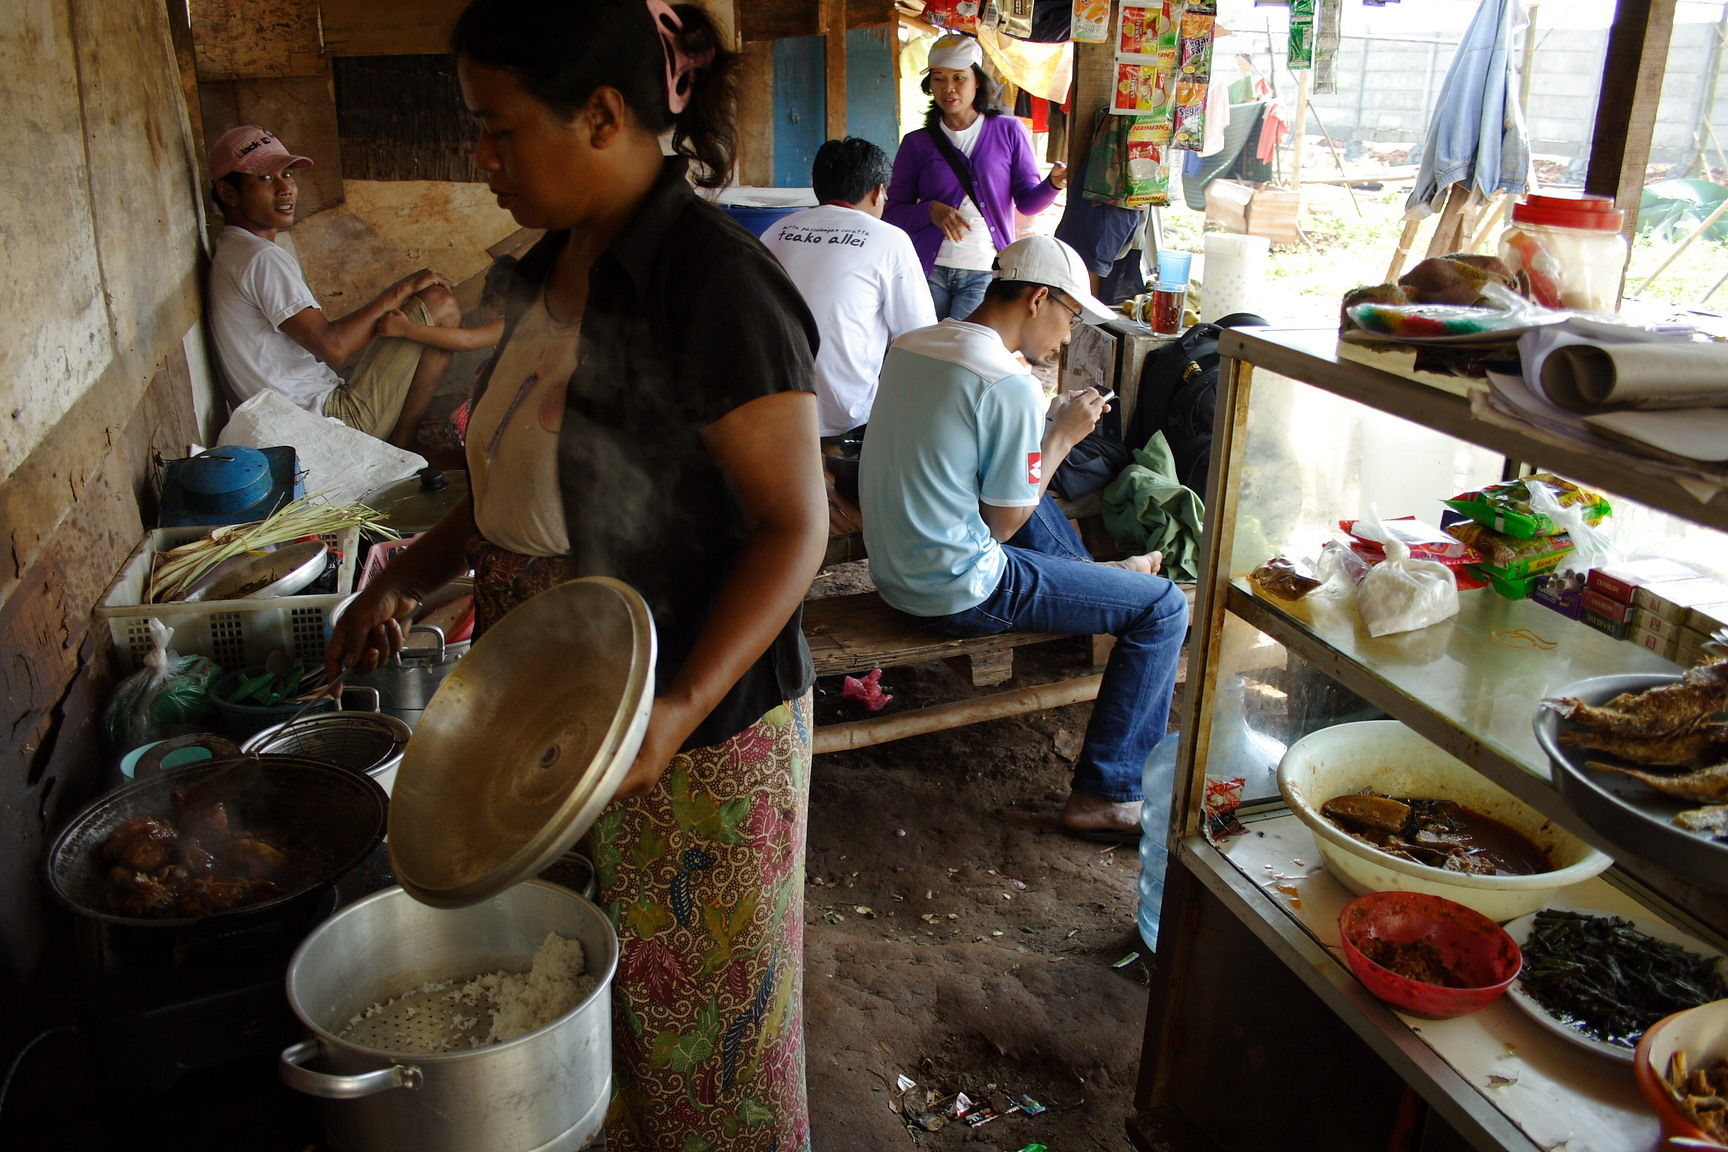 <p>A kitchen in Indonesia. Flickr/Caka-caka</p>